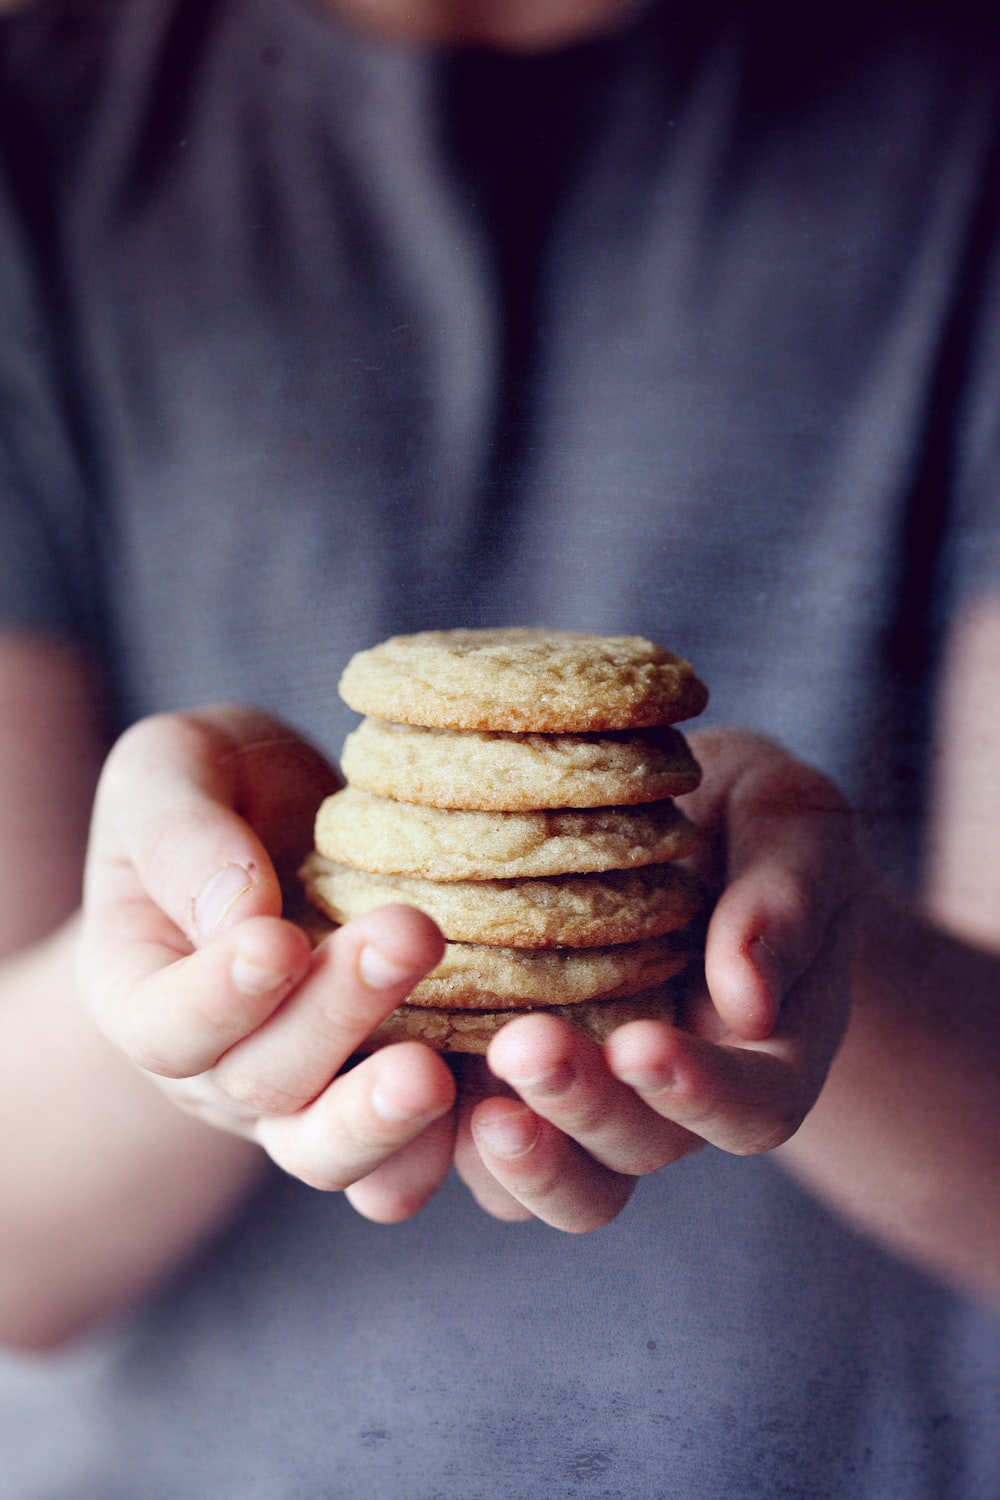 person holding brown cookies in close up photography